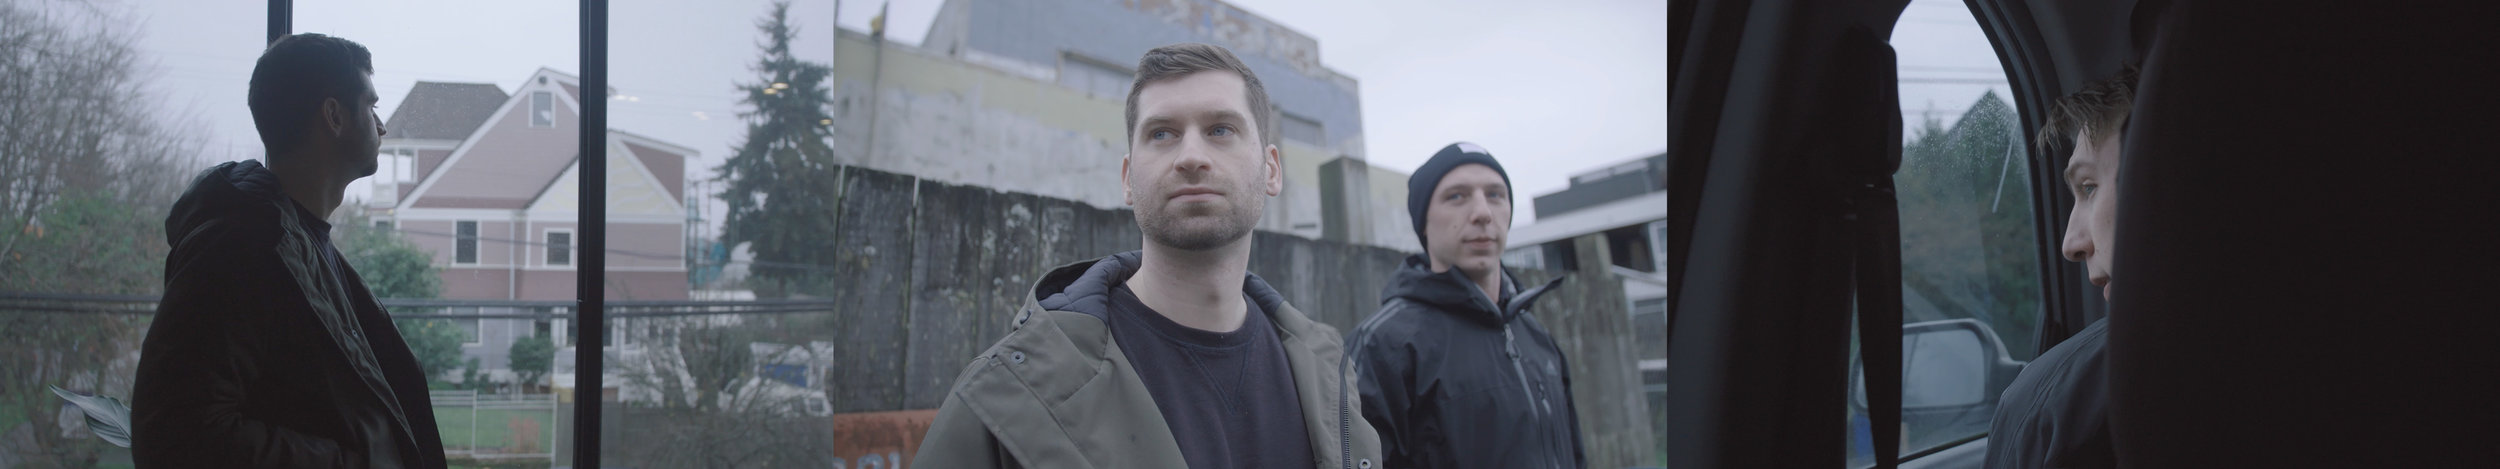 NATIVE INSTRUMENTS    ODESZA  music documentary